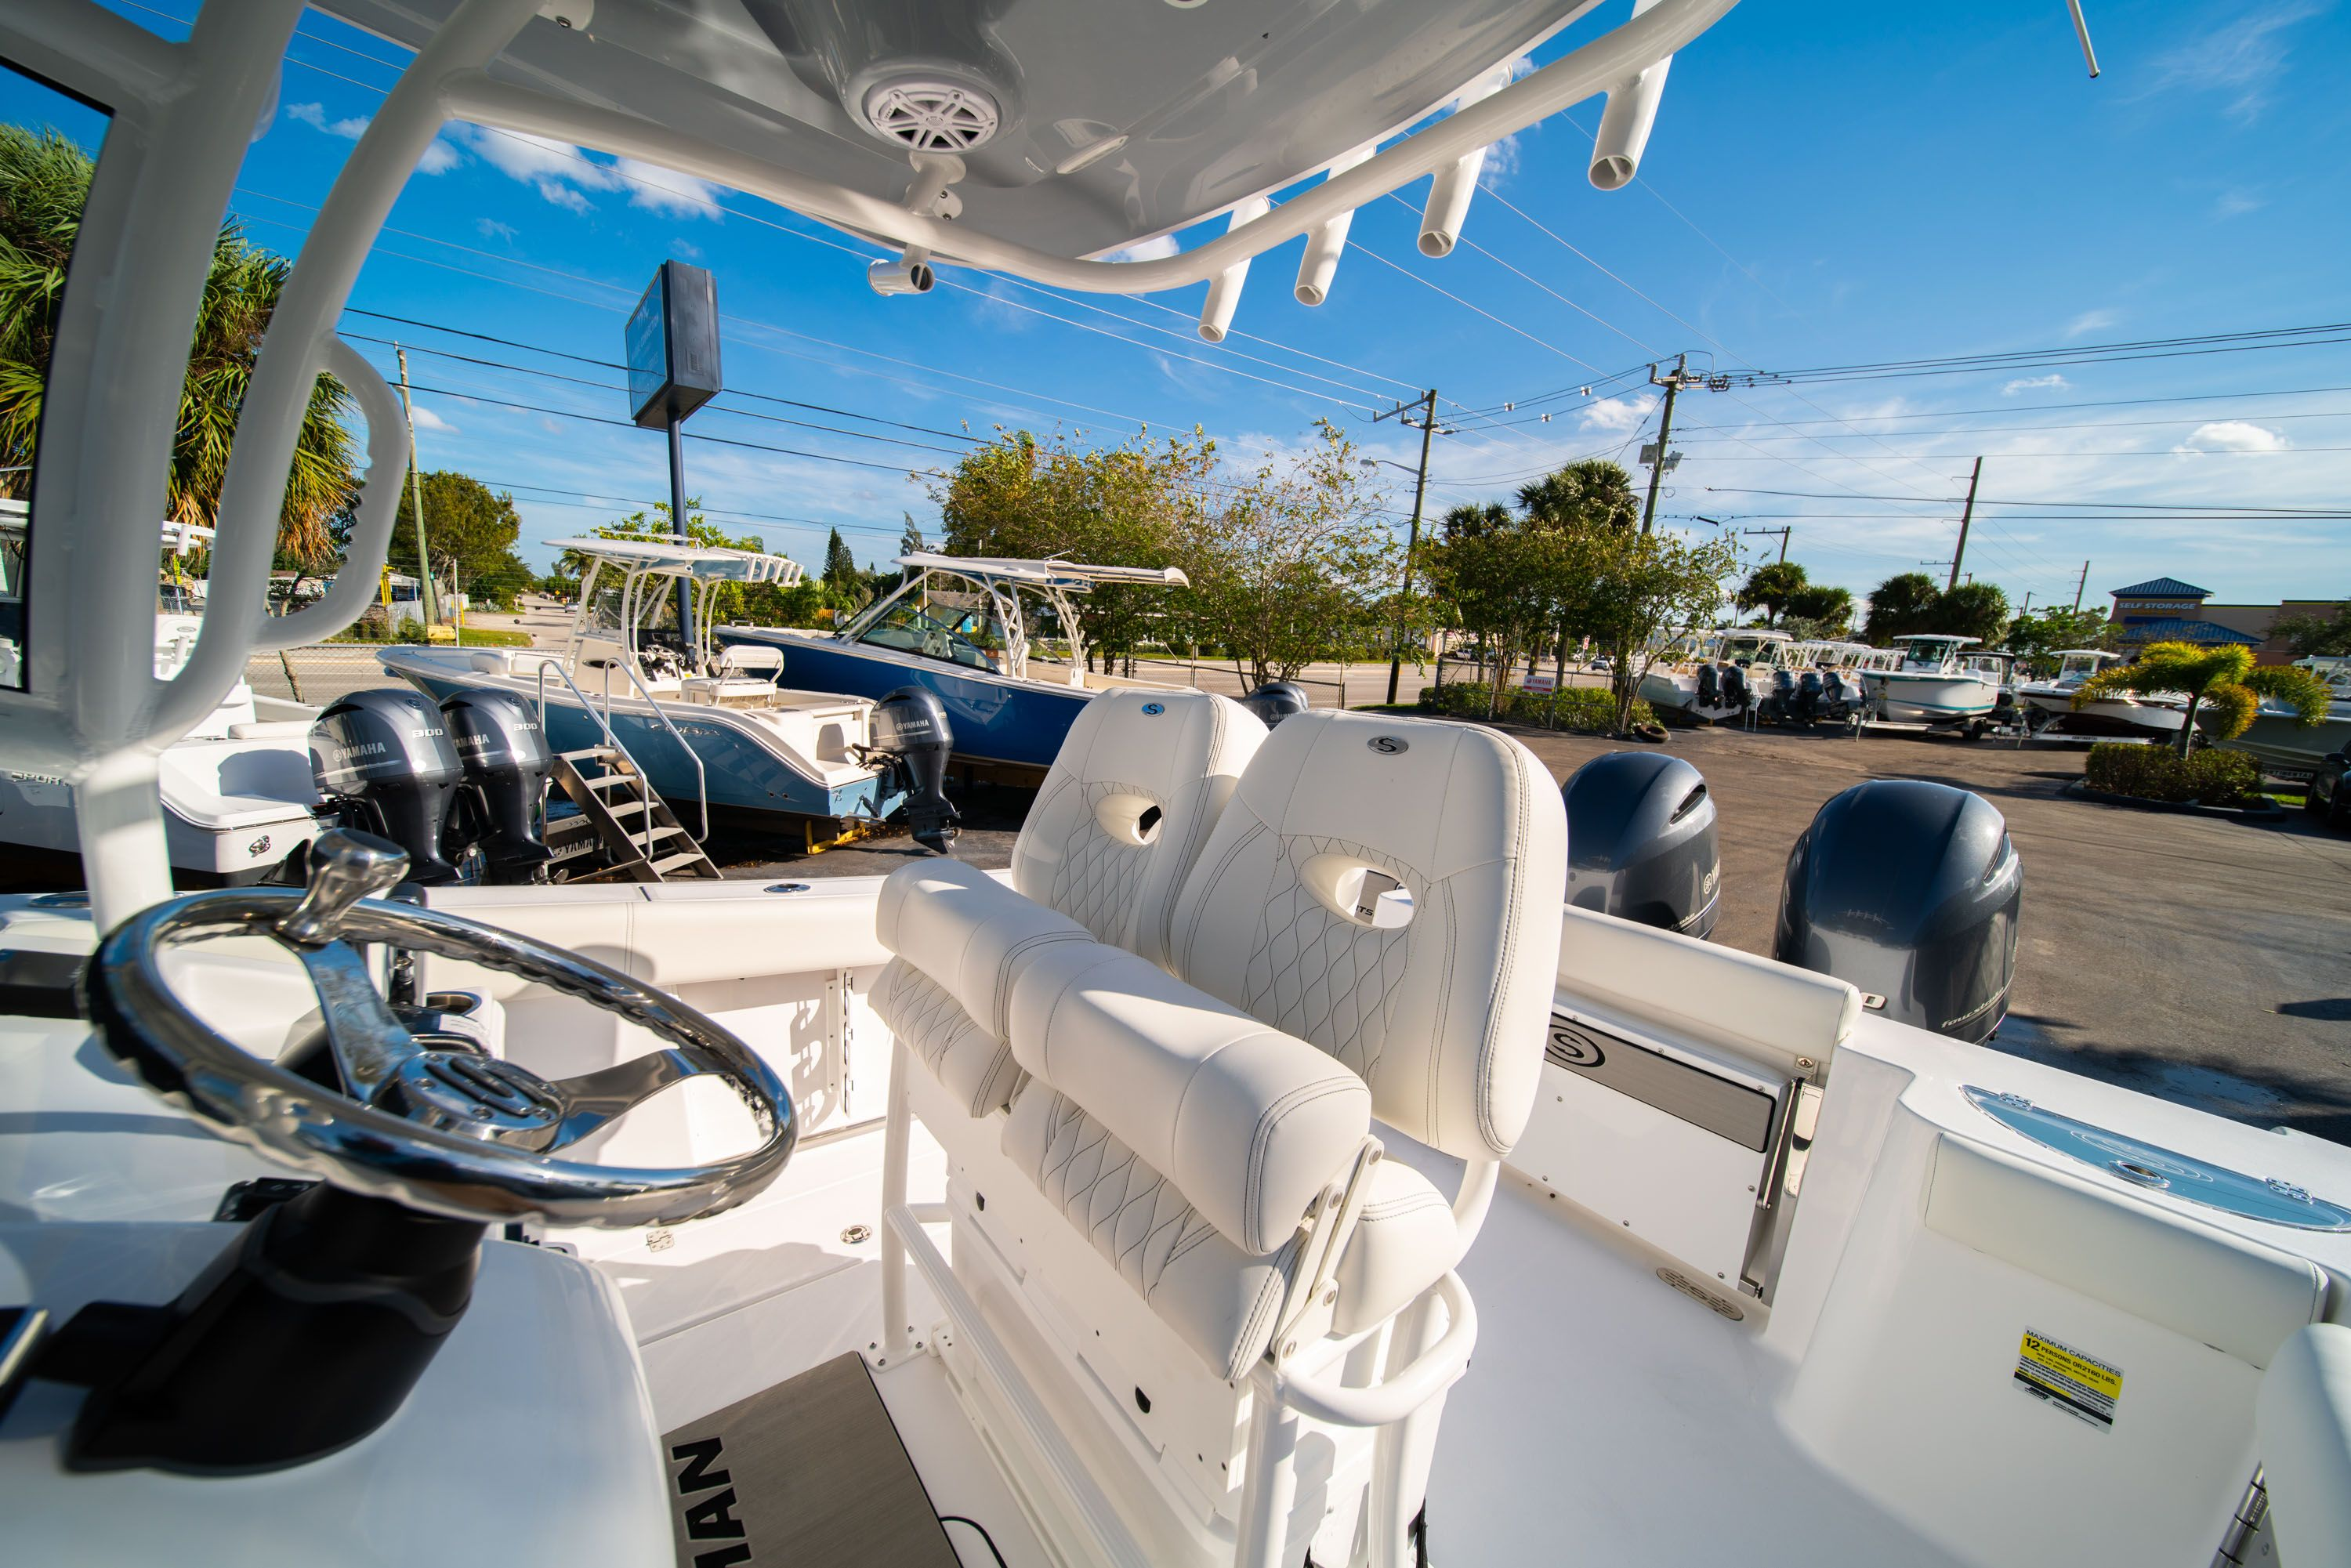 Thumbnail 37 for New 2020 Sportsman Open 252 Center Console boat for sale in West Palm Beach, FL